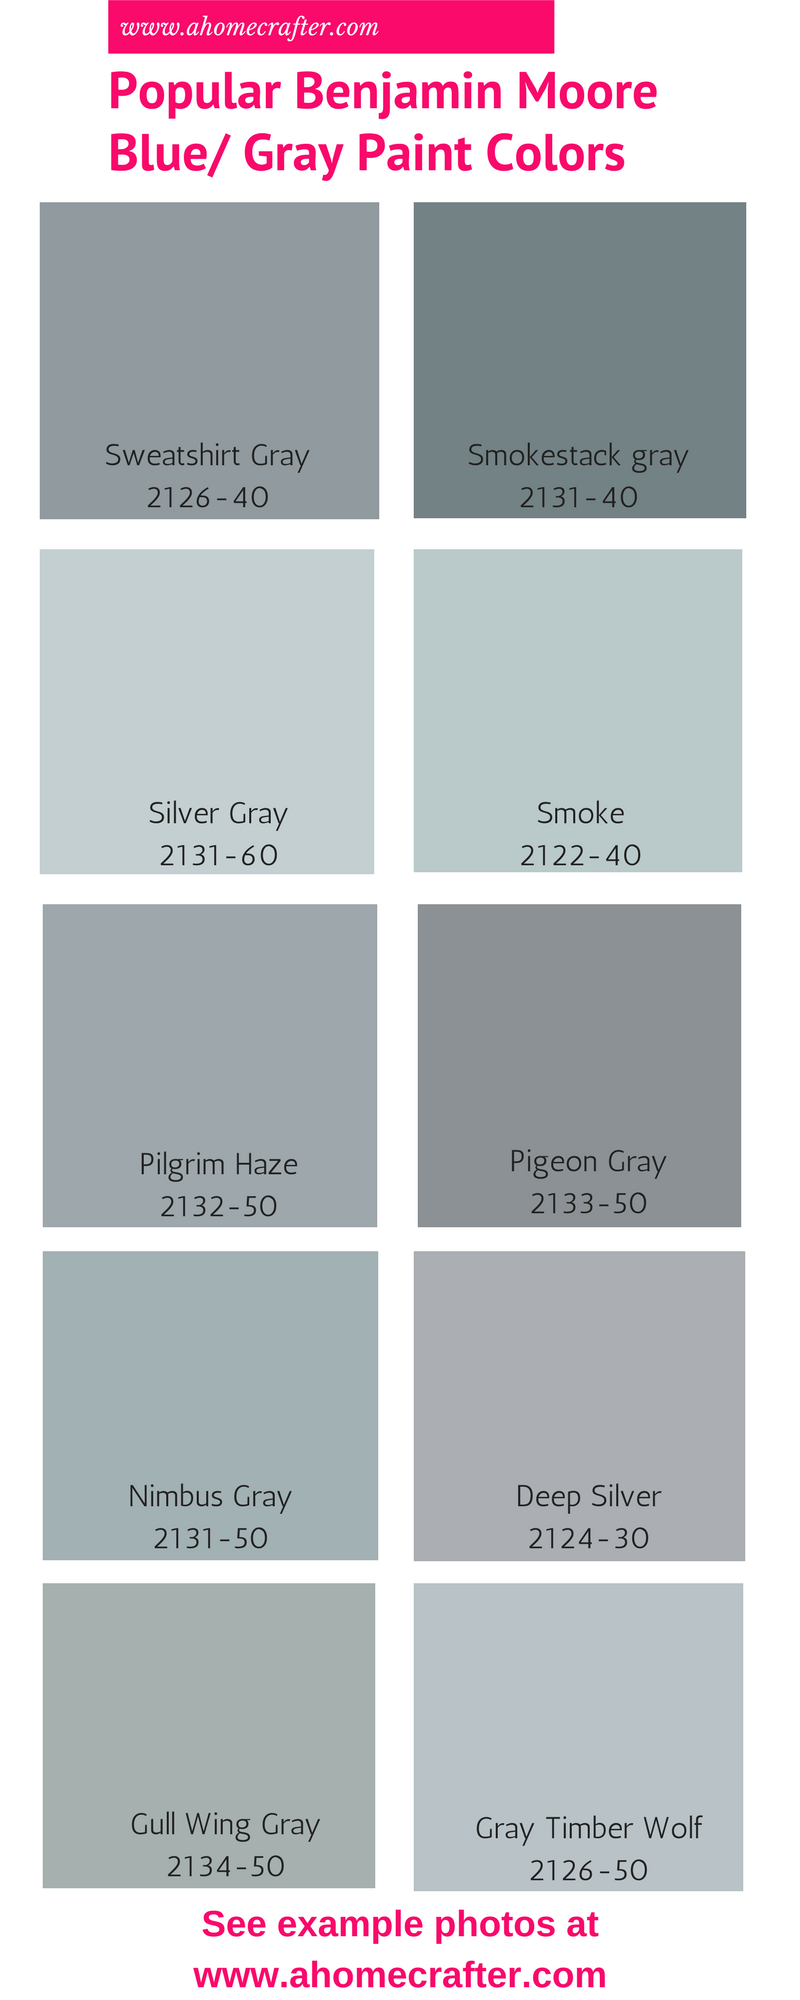 Blue Gray Paint smoke or gray timber wolf | dylan | pinterest | kids room design